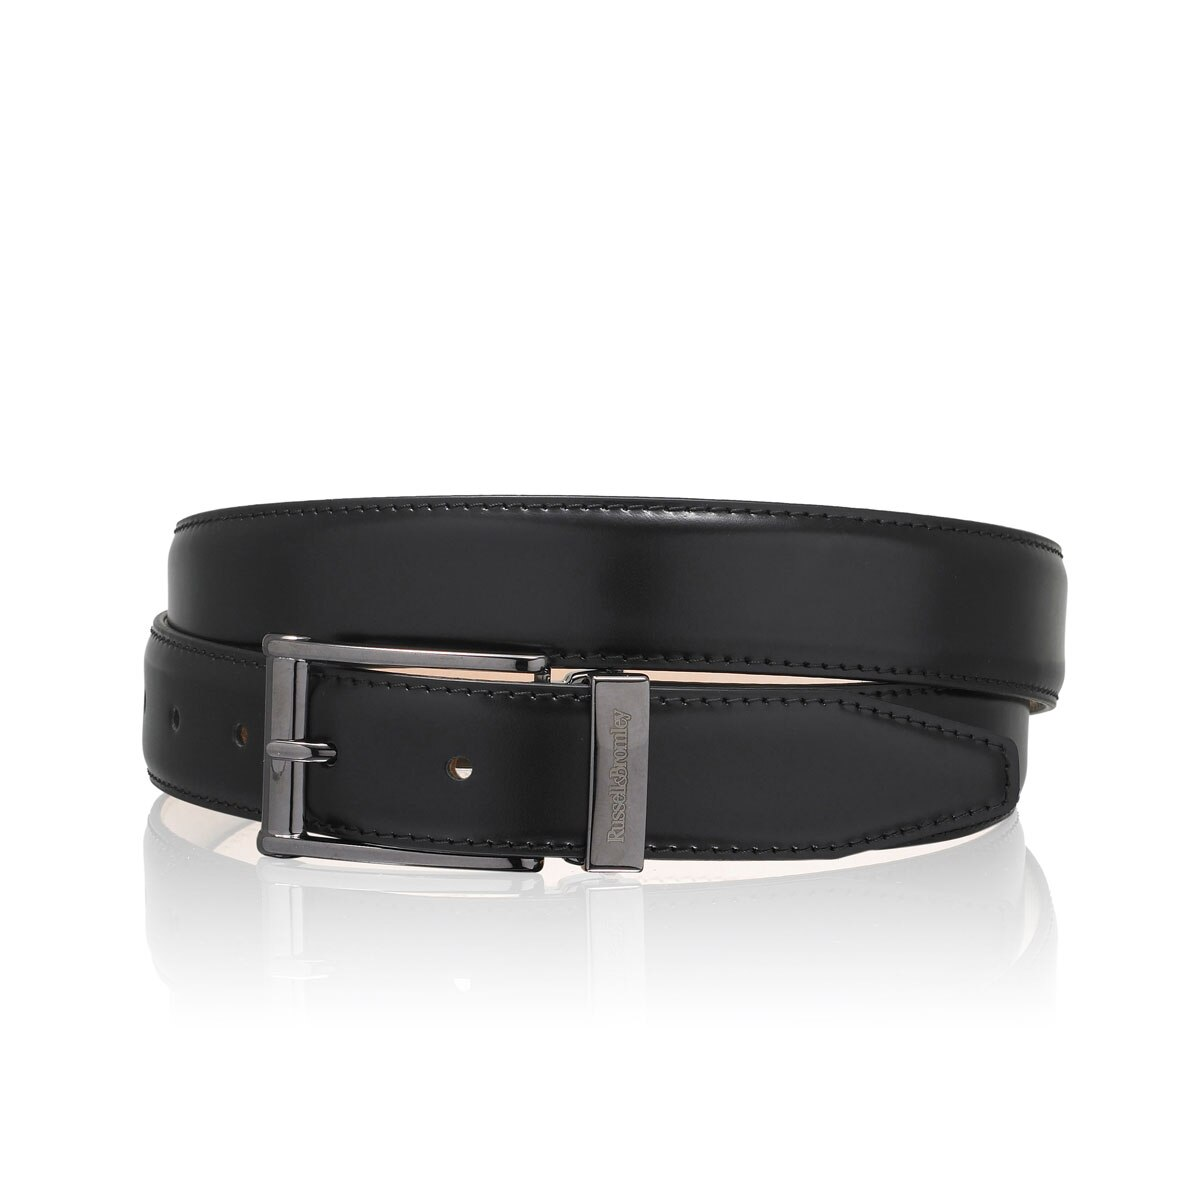 SALSA 30mm Business Belt